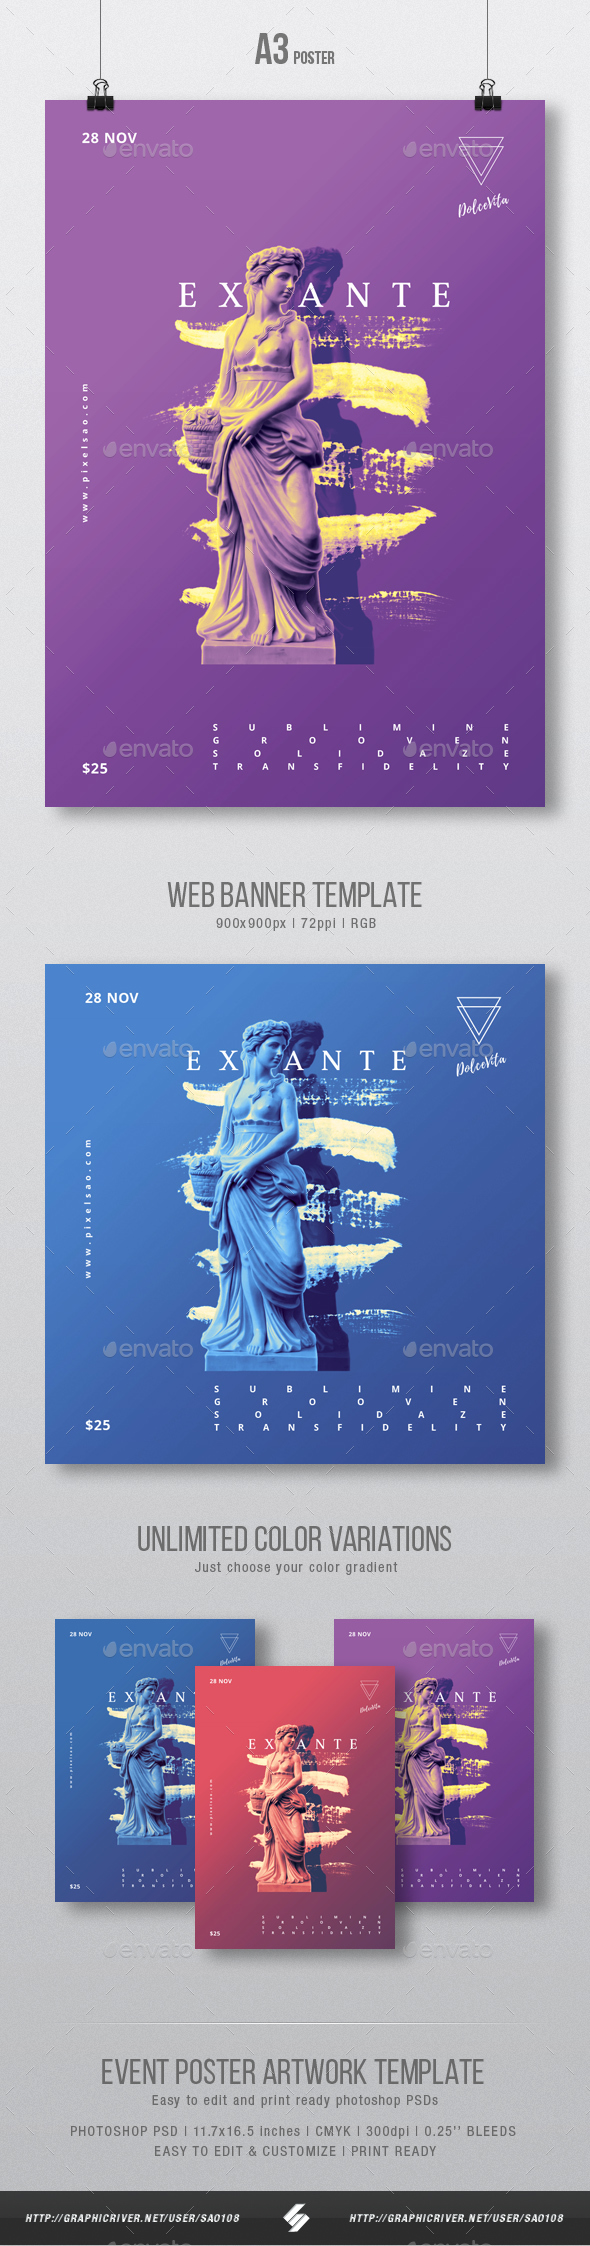 Ex Ante - Creative Party Flyer / Poster Artwork Template A3 - Clubs & Parties Events